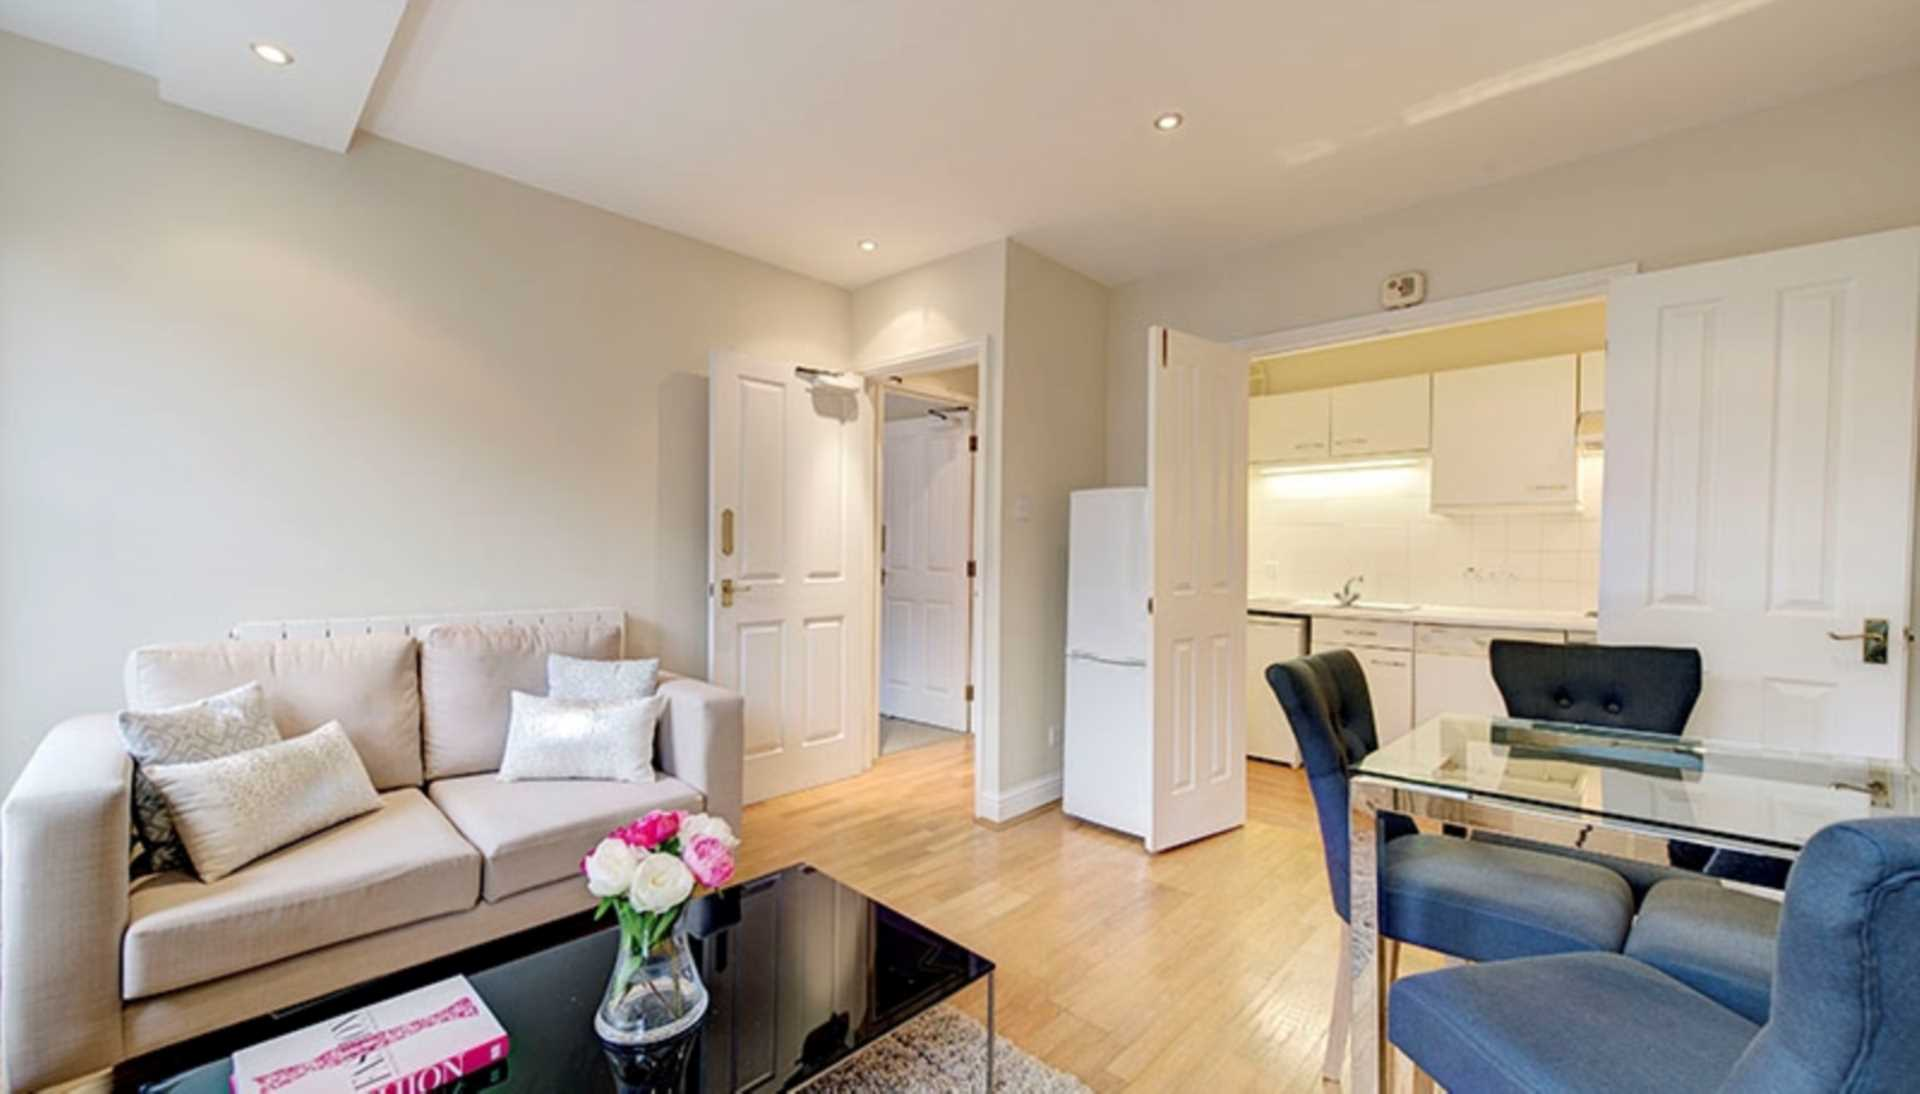 Property To Rent In London L2L82-1066